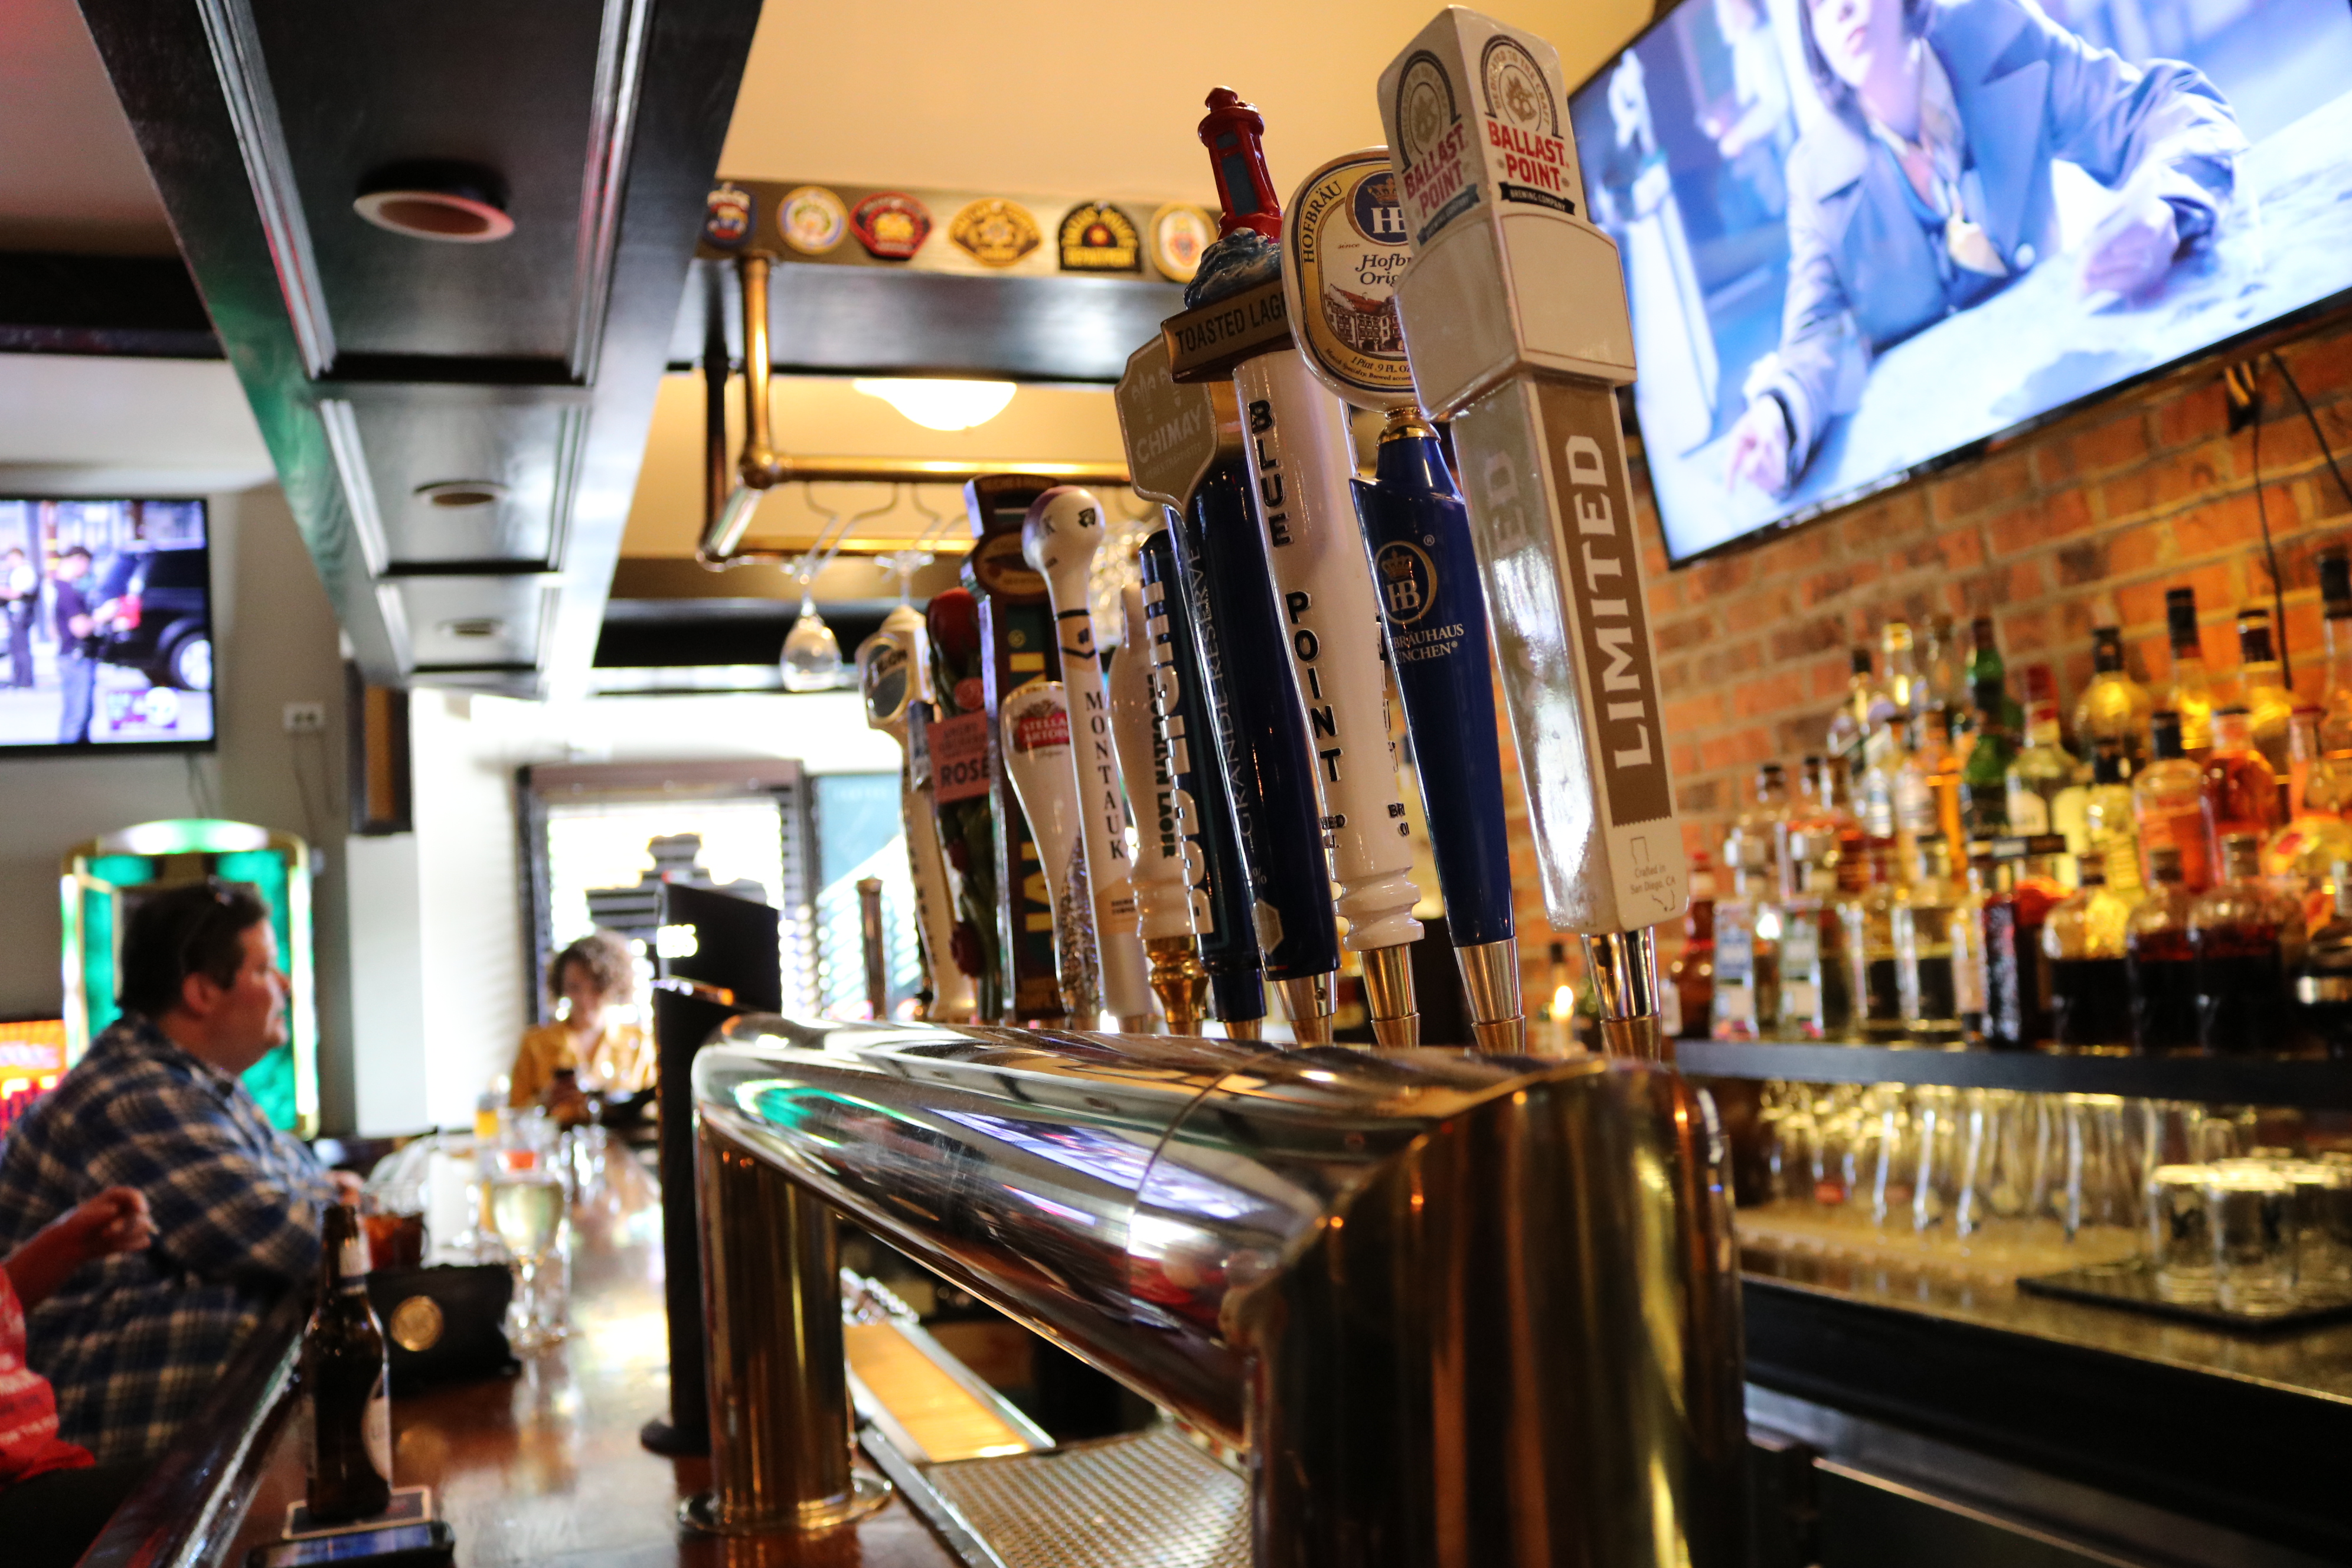 Beers on tap